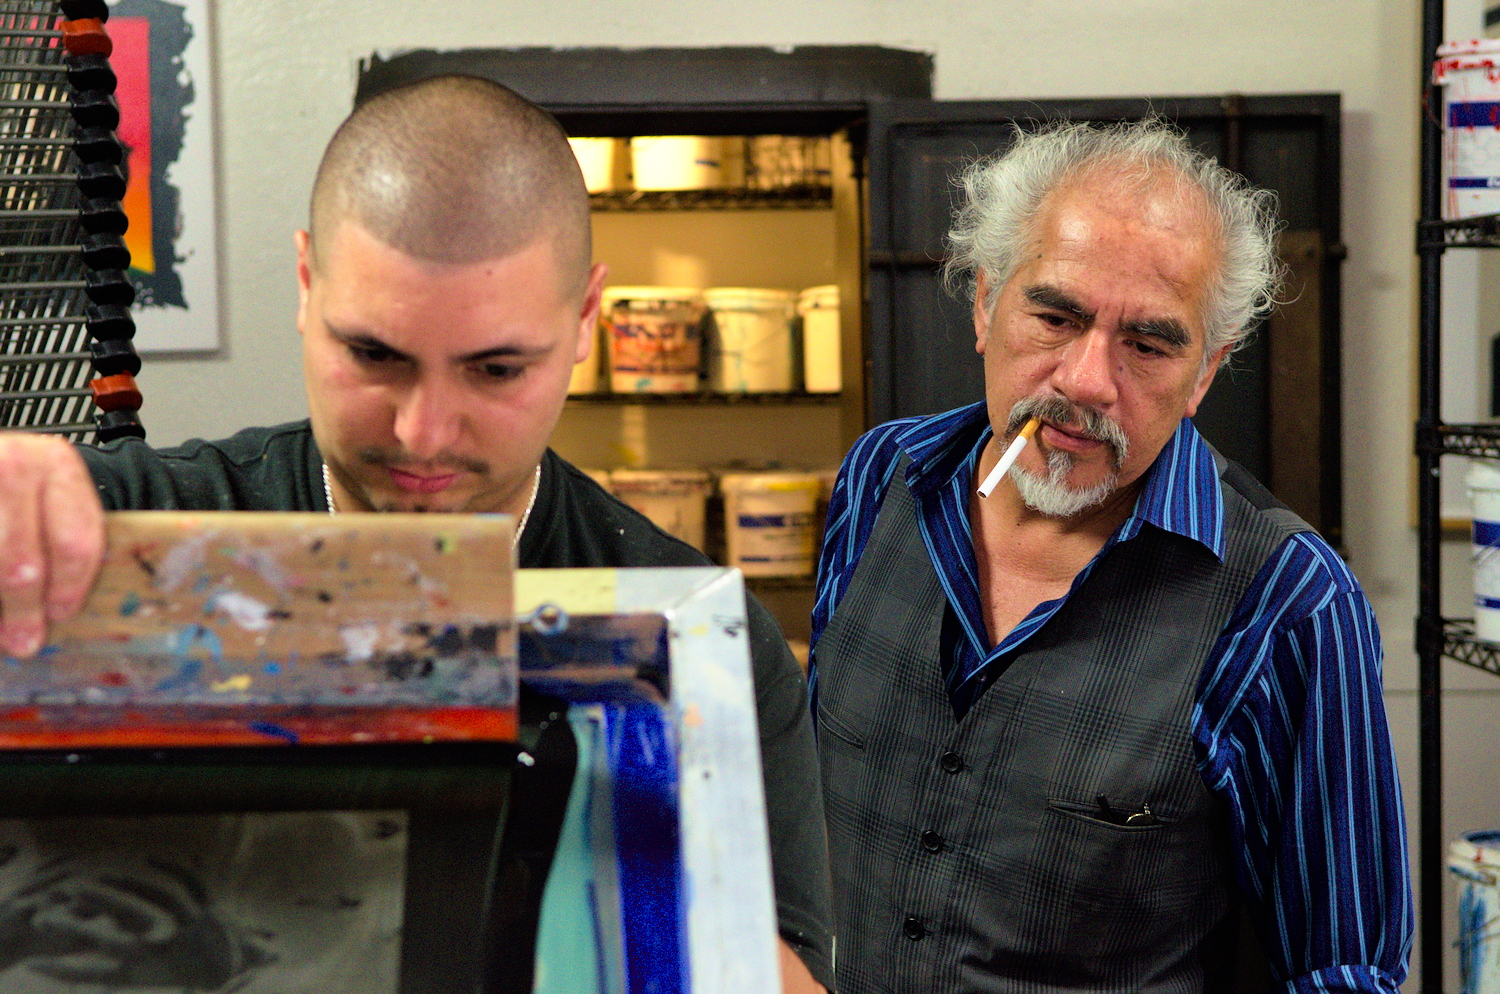 Richard Duardo (right), printmaster and founder of the renowned Modern Multiples Editions. His studio is a major established actor, working with local and international contemporary artists such as the street artists Shepard Fairey.